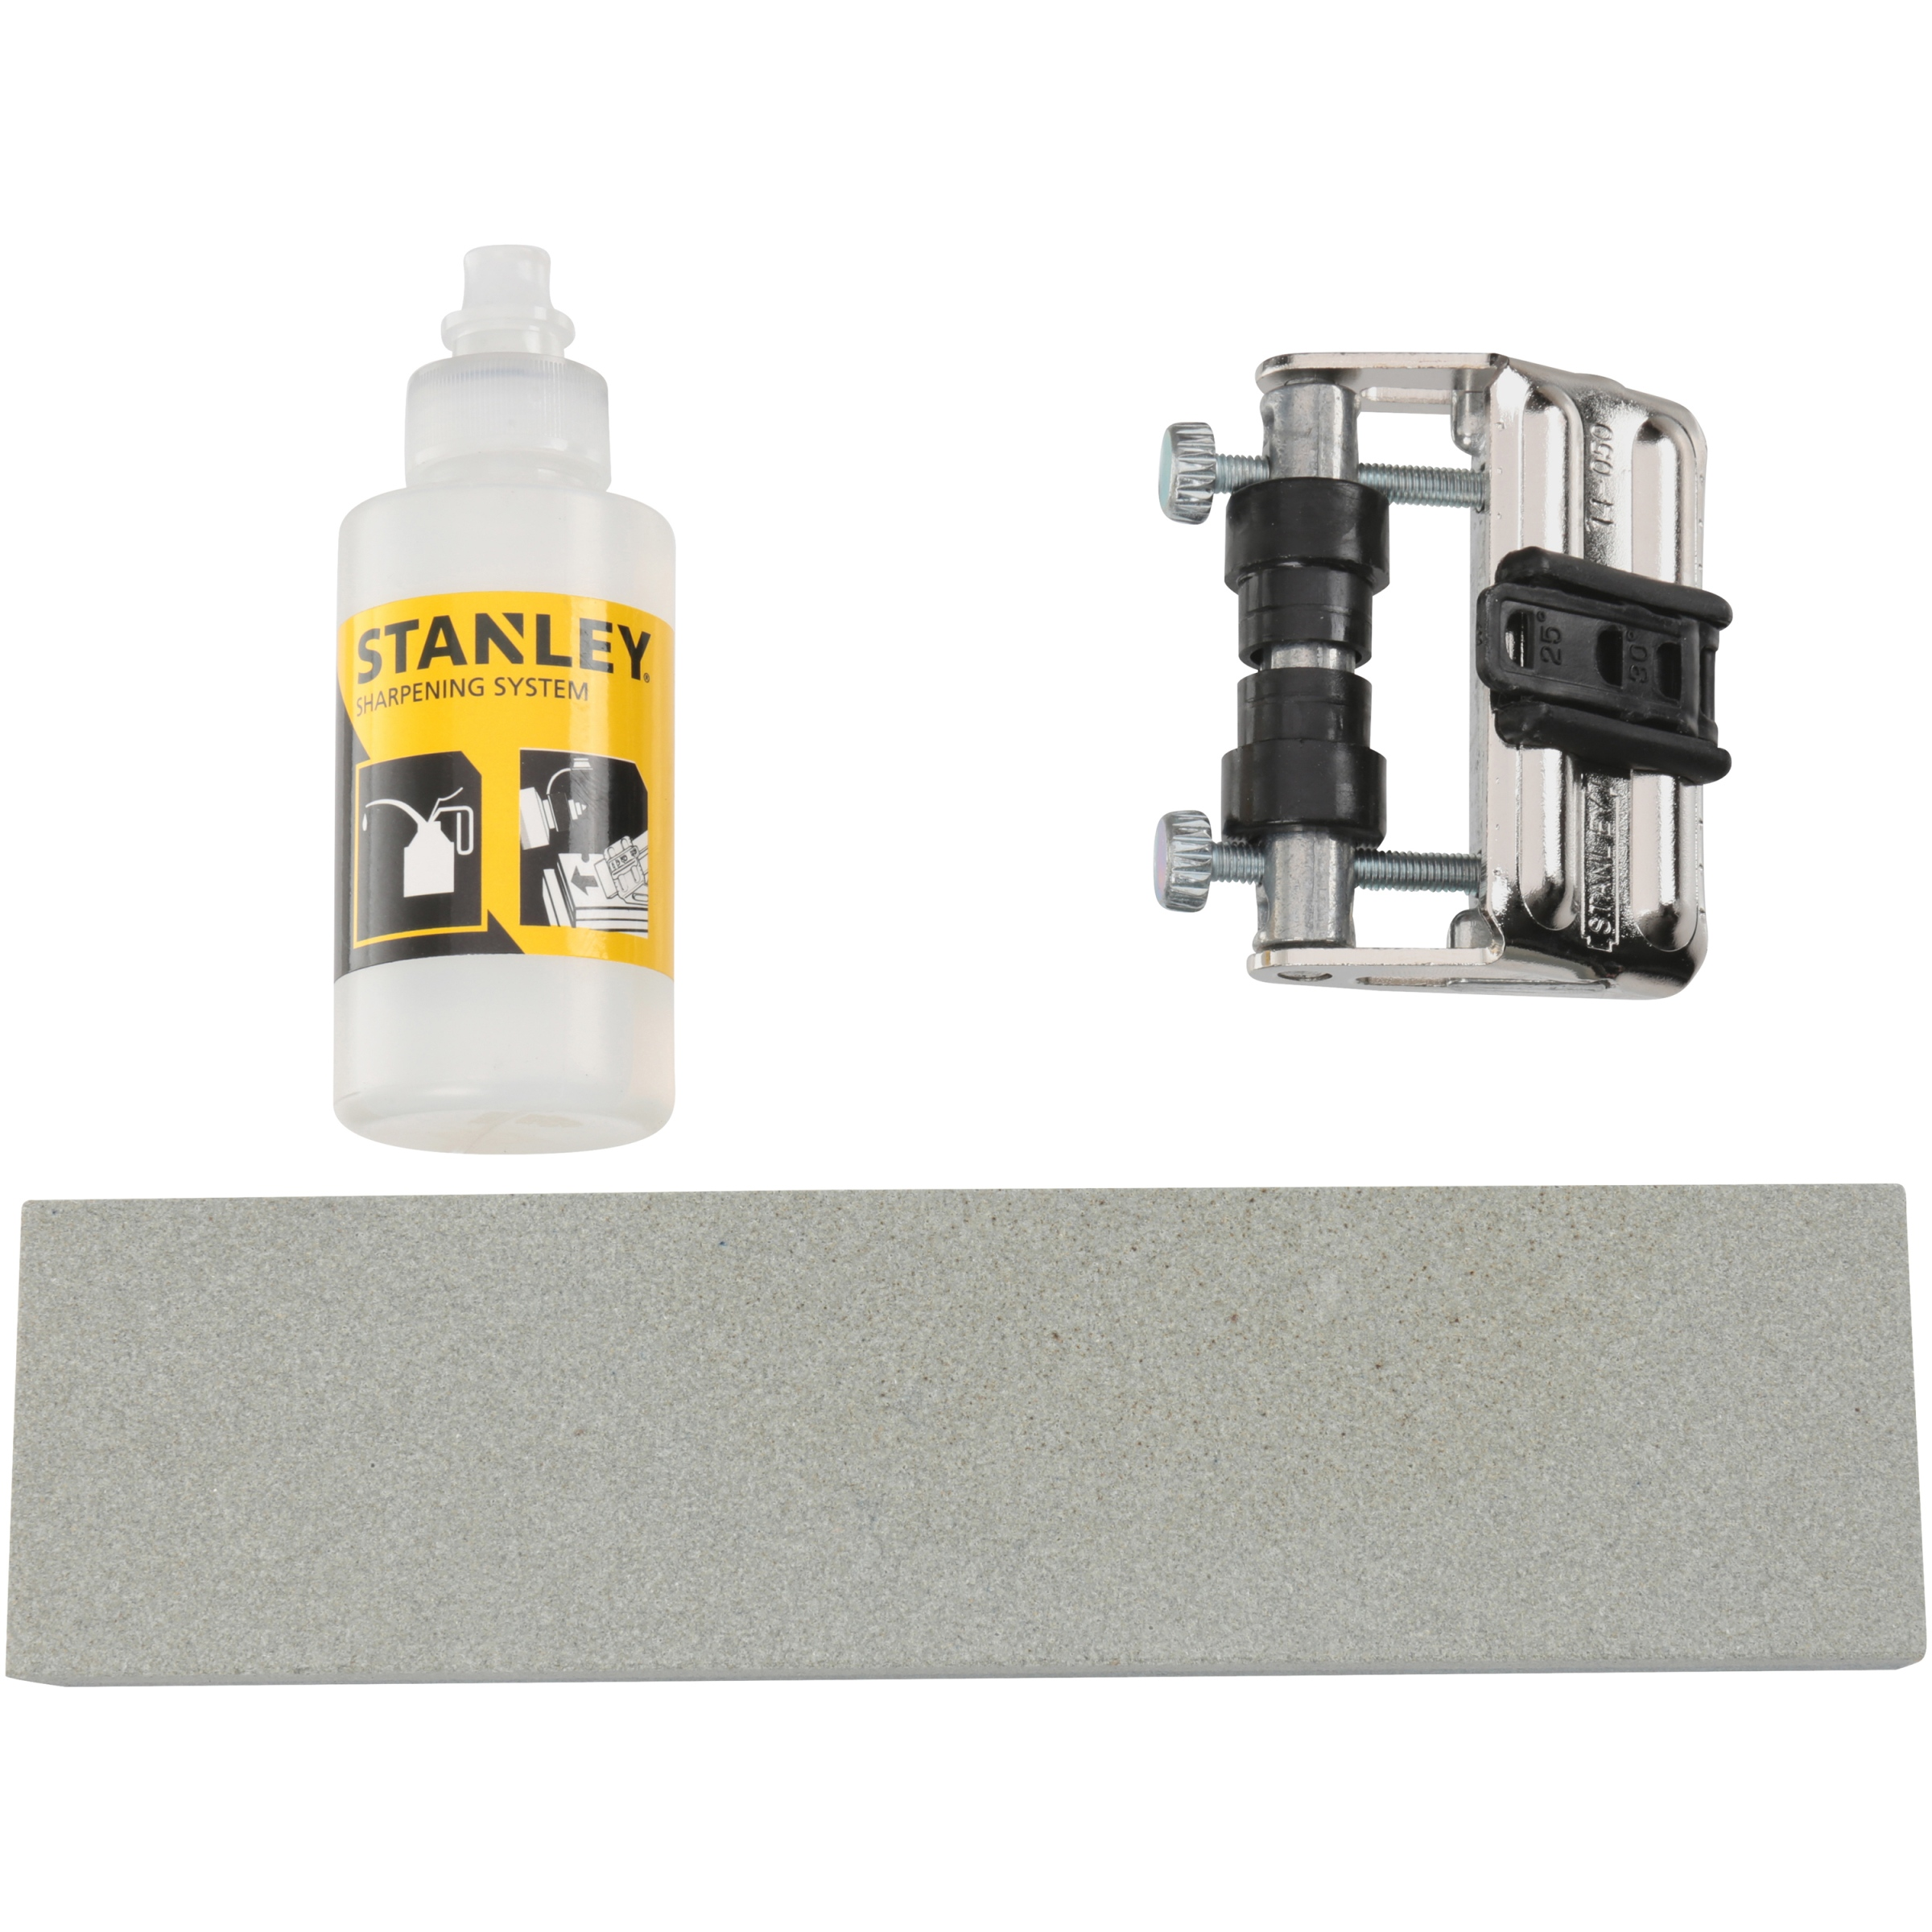 STANLEY 16-050 Blade Sharpening Kit